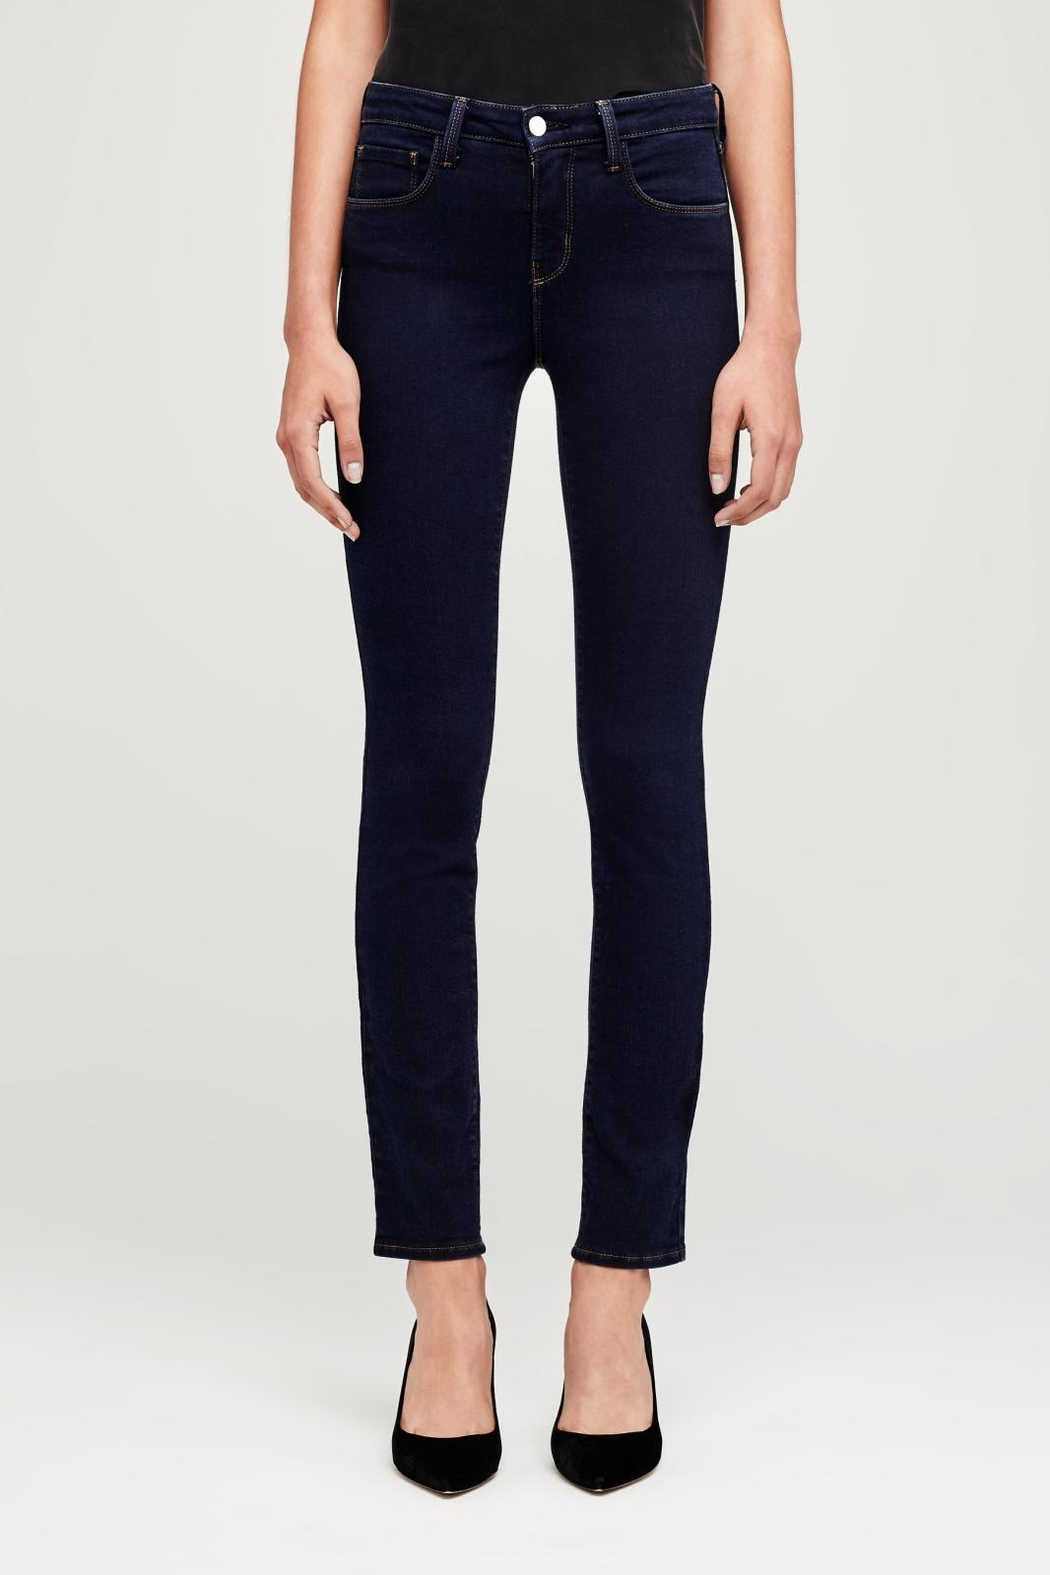 L'Agence Tilly Mid-Rise Jeans - Front Full Image